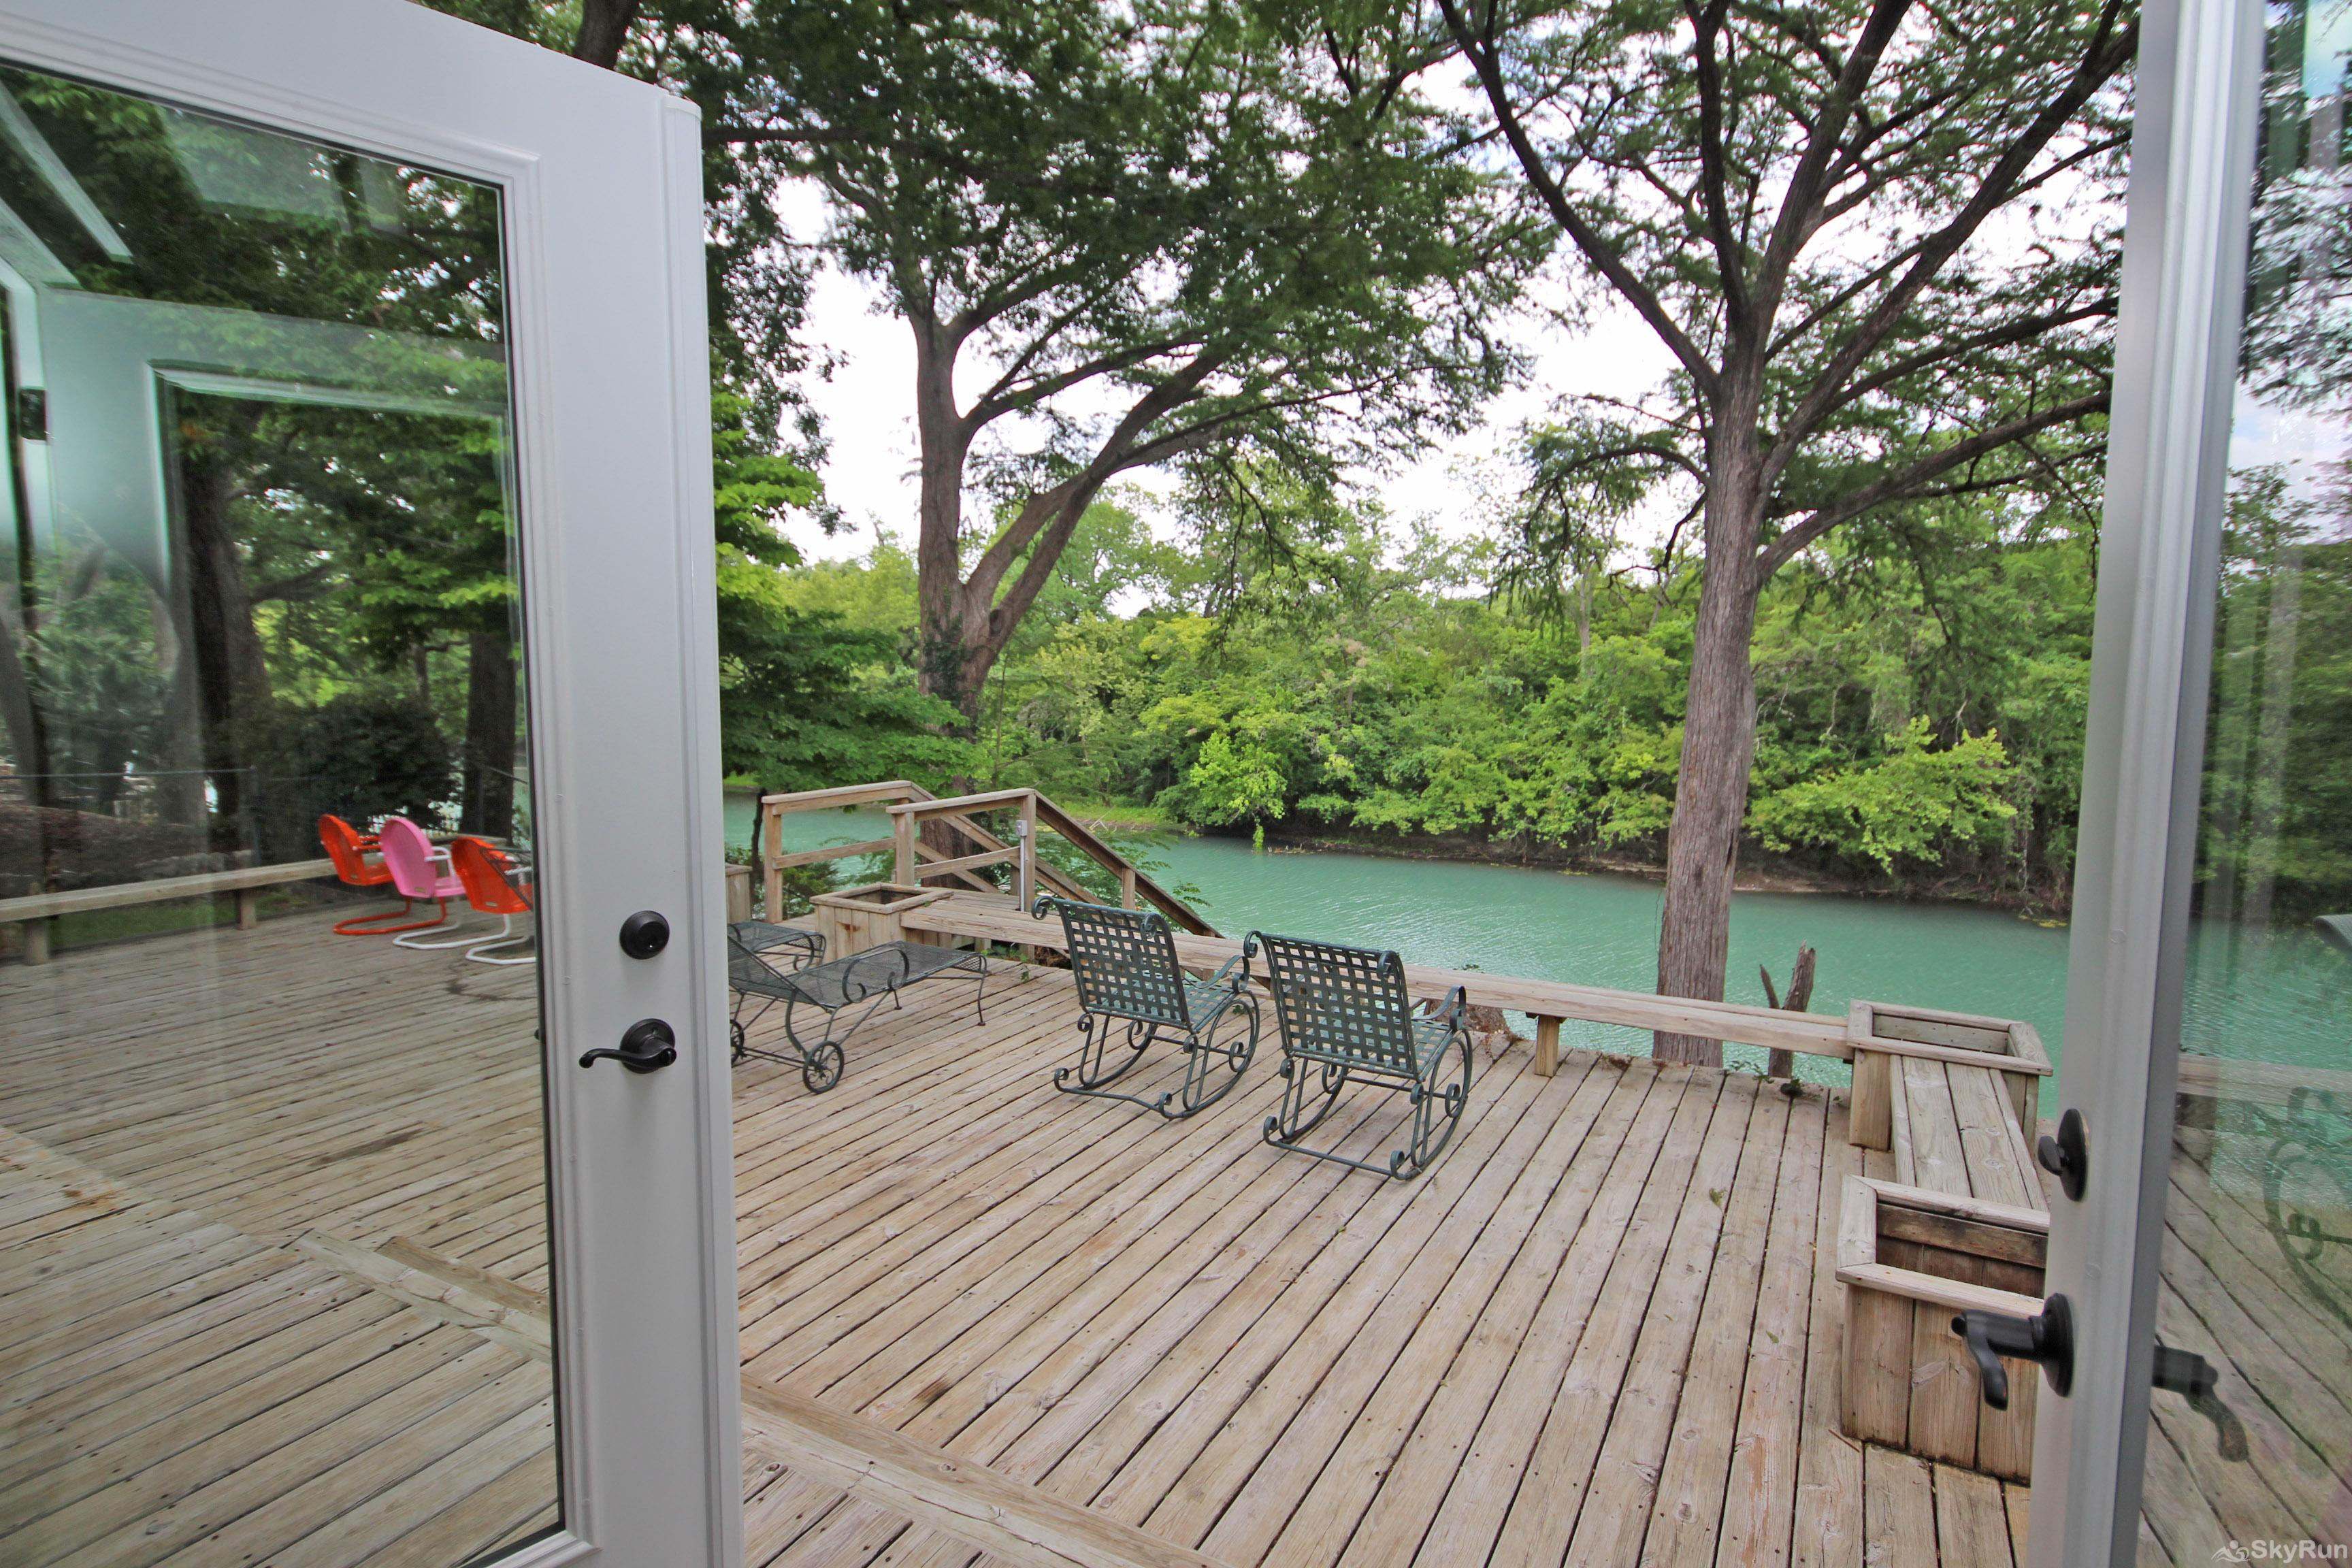 MAVERICK'S RIVER HAUS & GUEST HAUS View of deck and Guadalupe River from living room